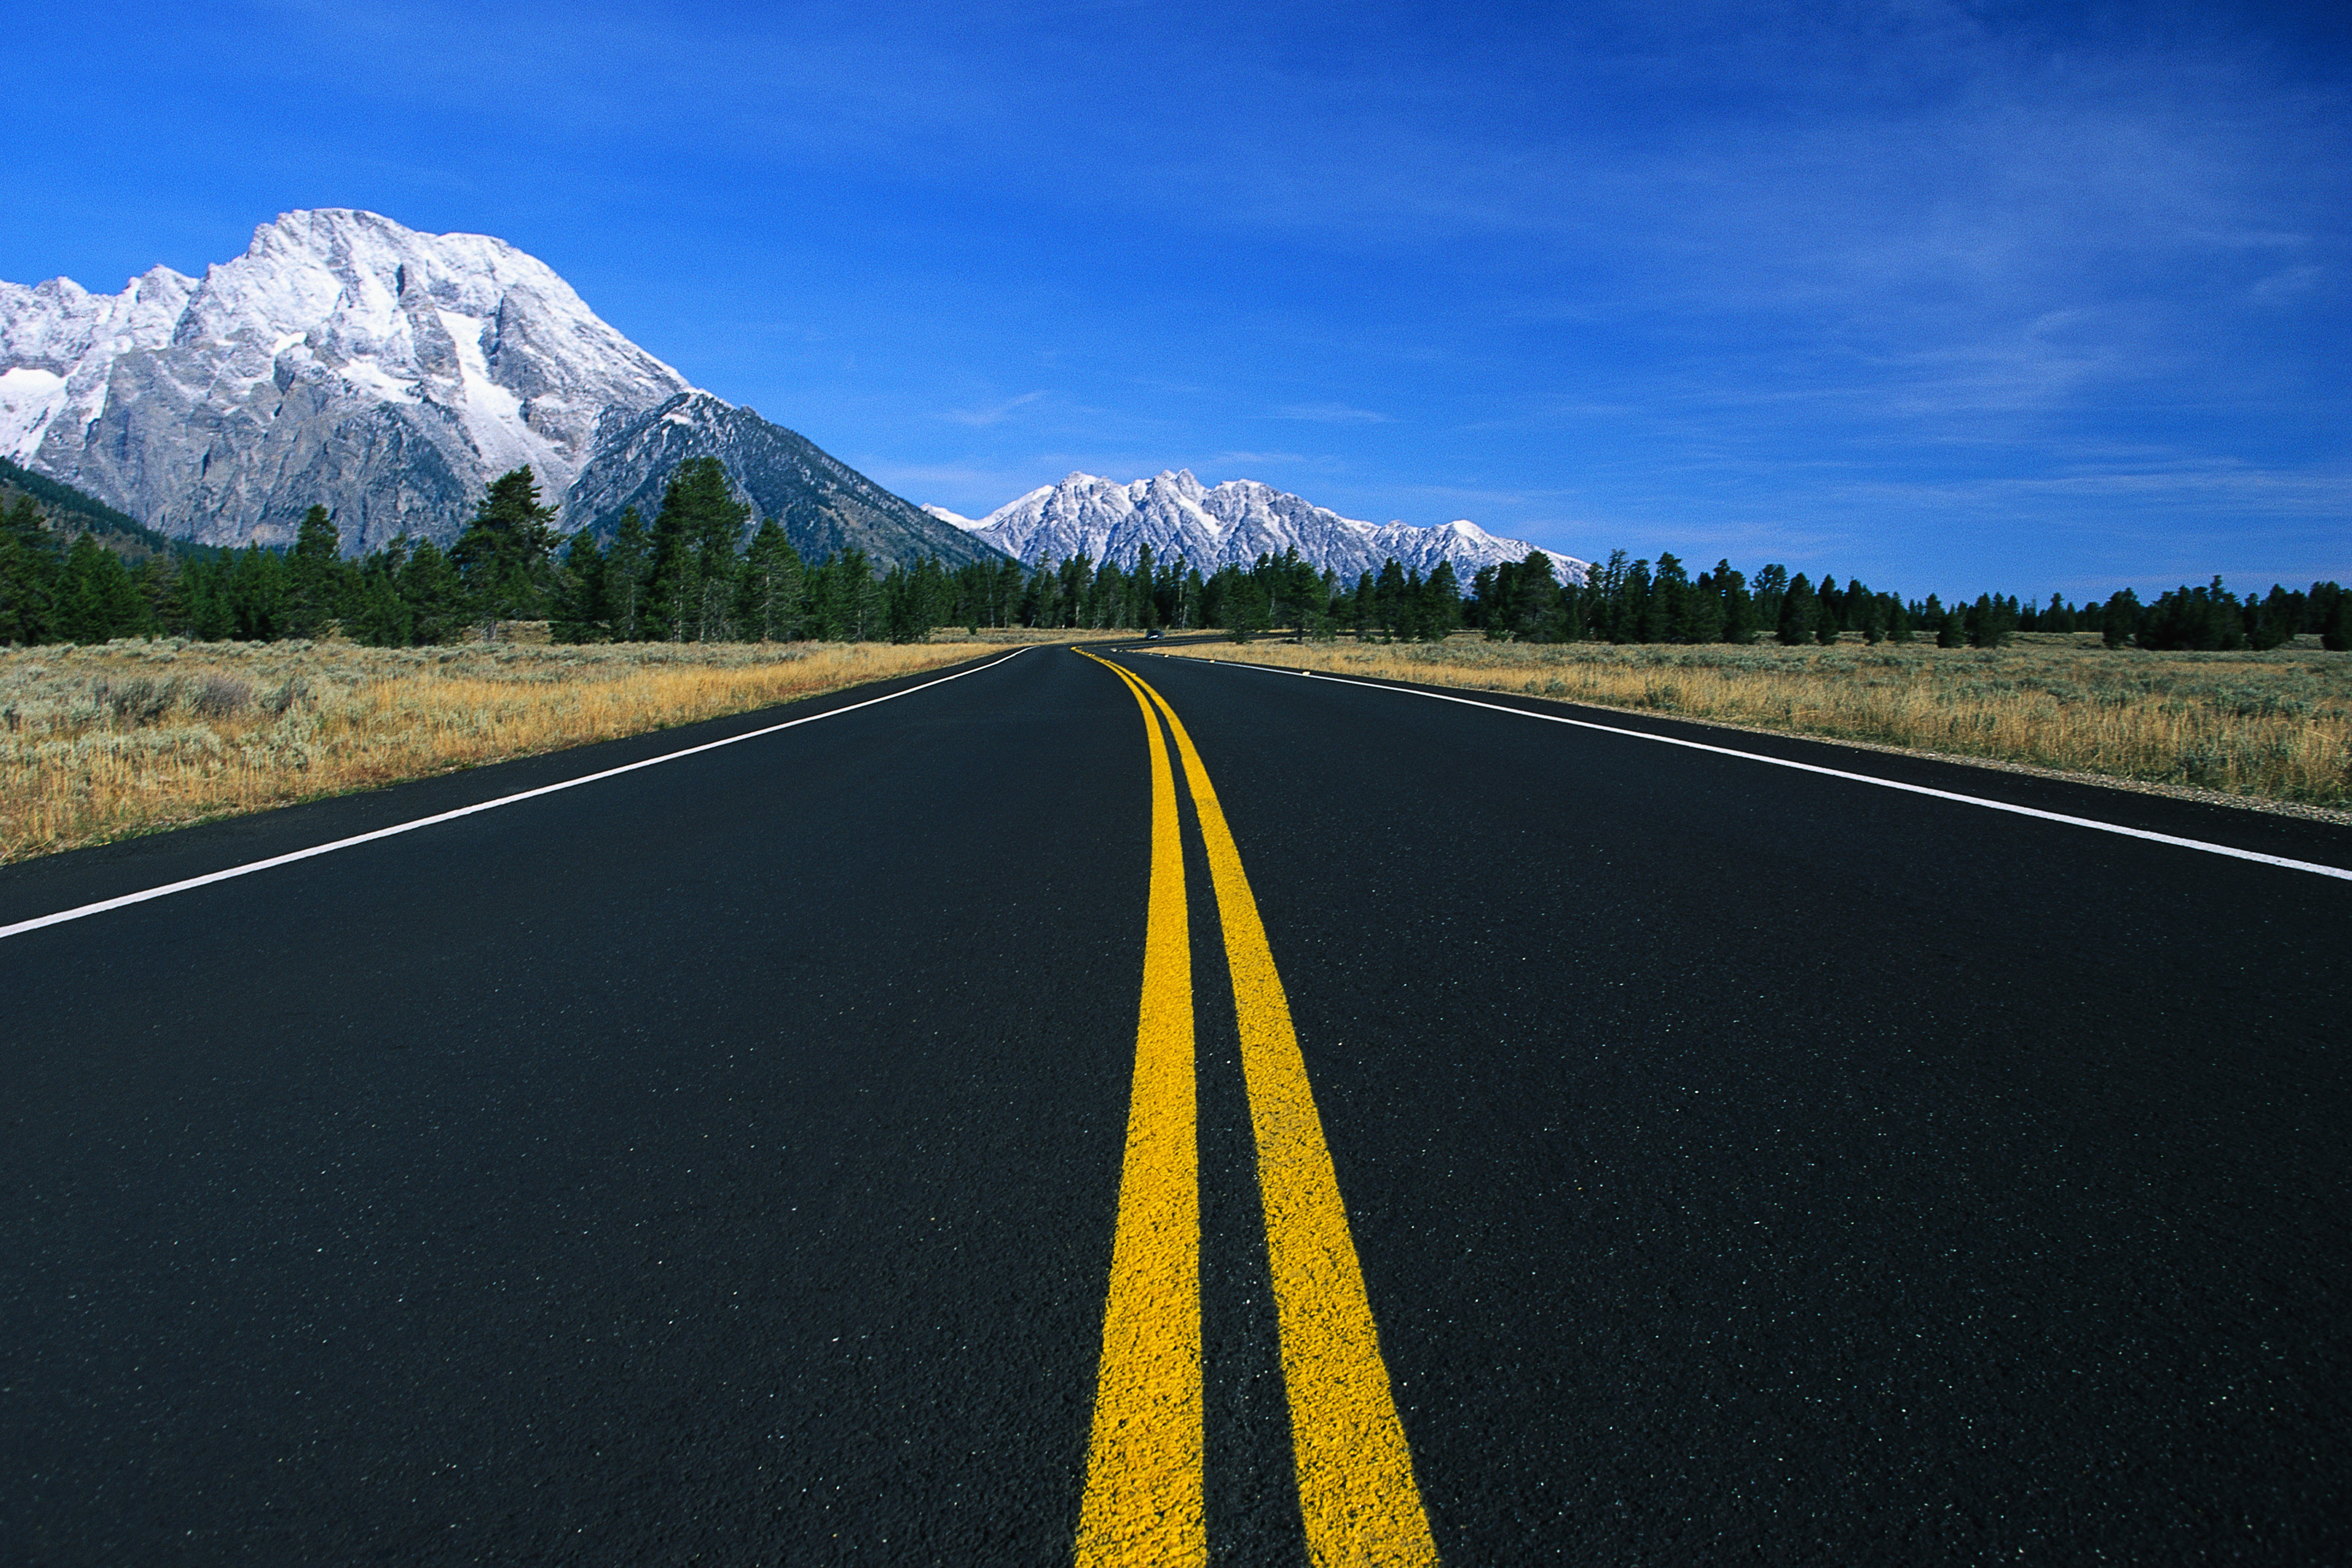 road background images - photo #44